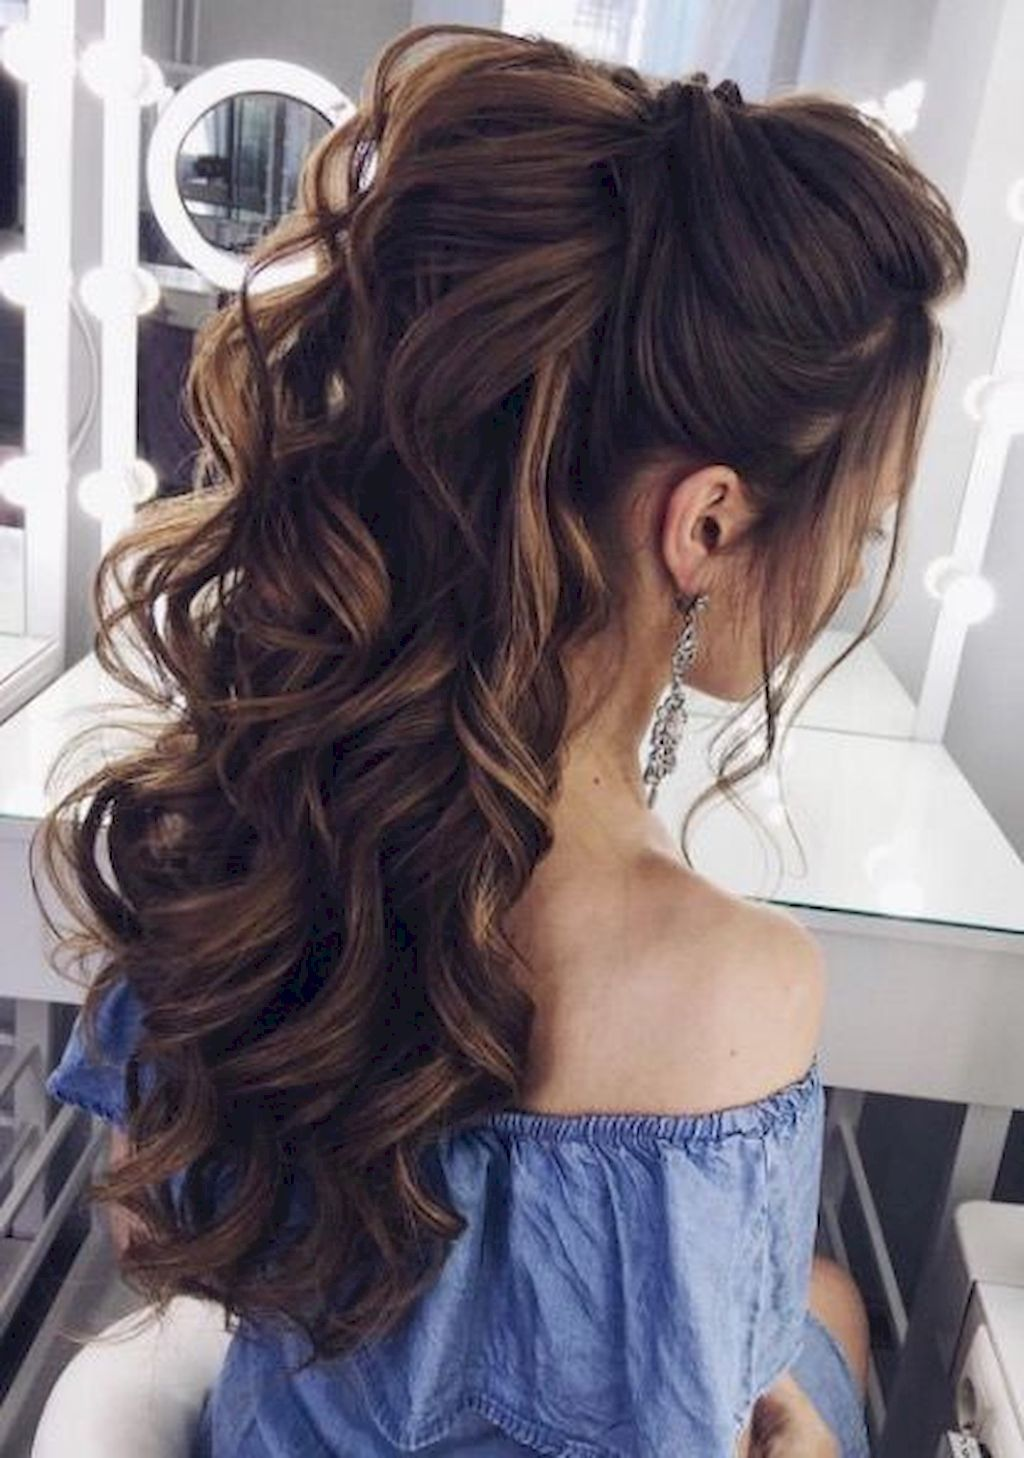 96 bridal wedding hairstyles for long hair that will inspire adorable 96 bridal wedding hairstyles for long hair that will inspire httpsbitecloth junglespirit Images